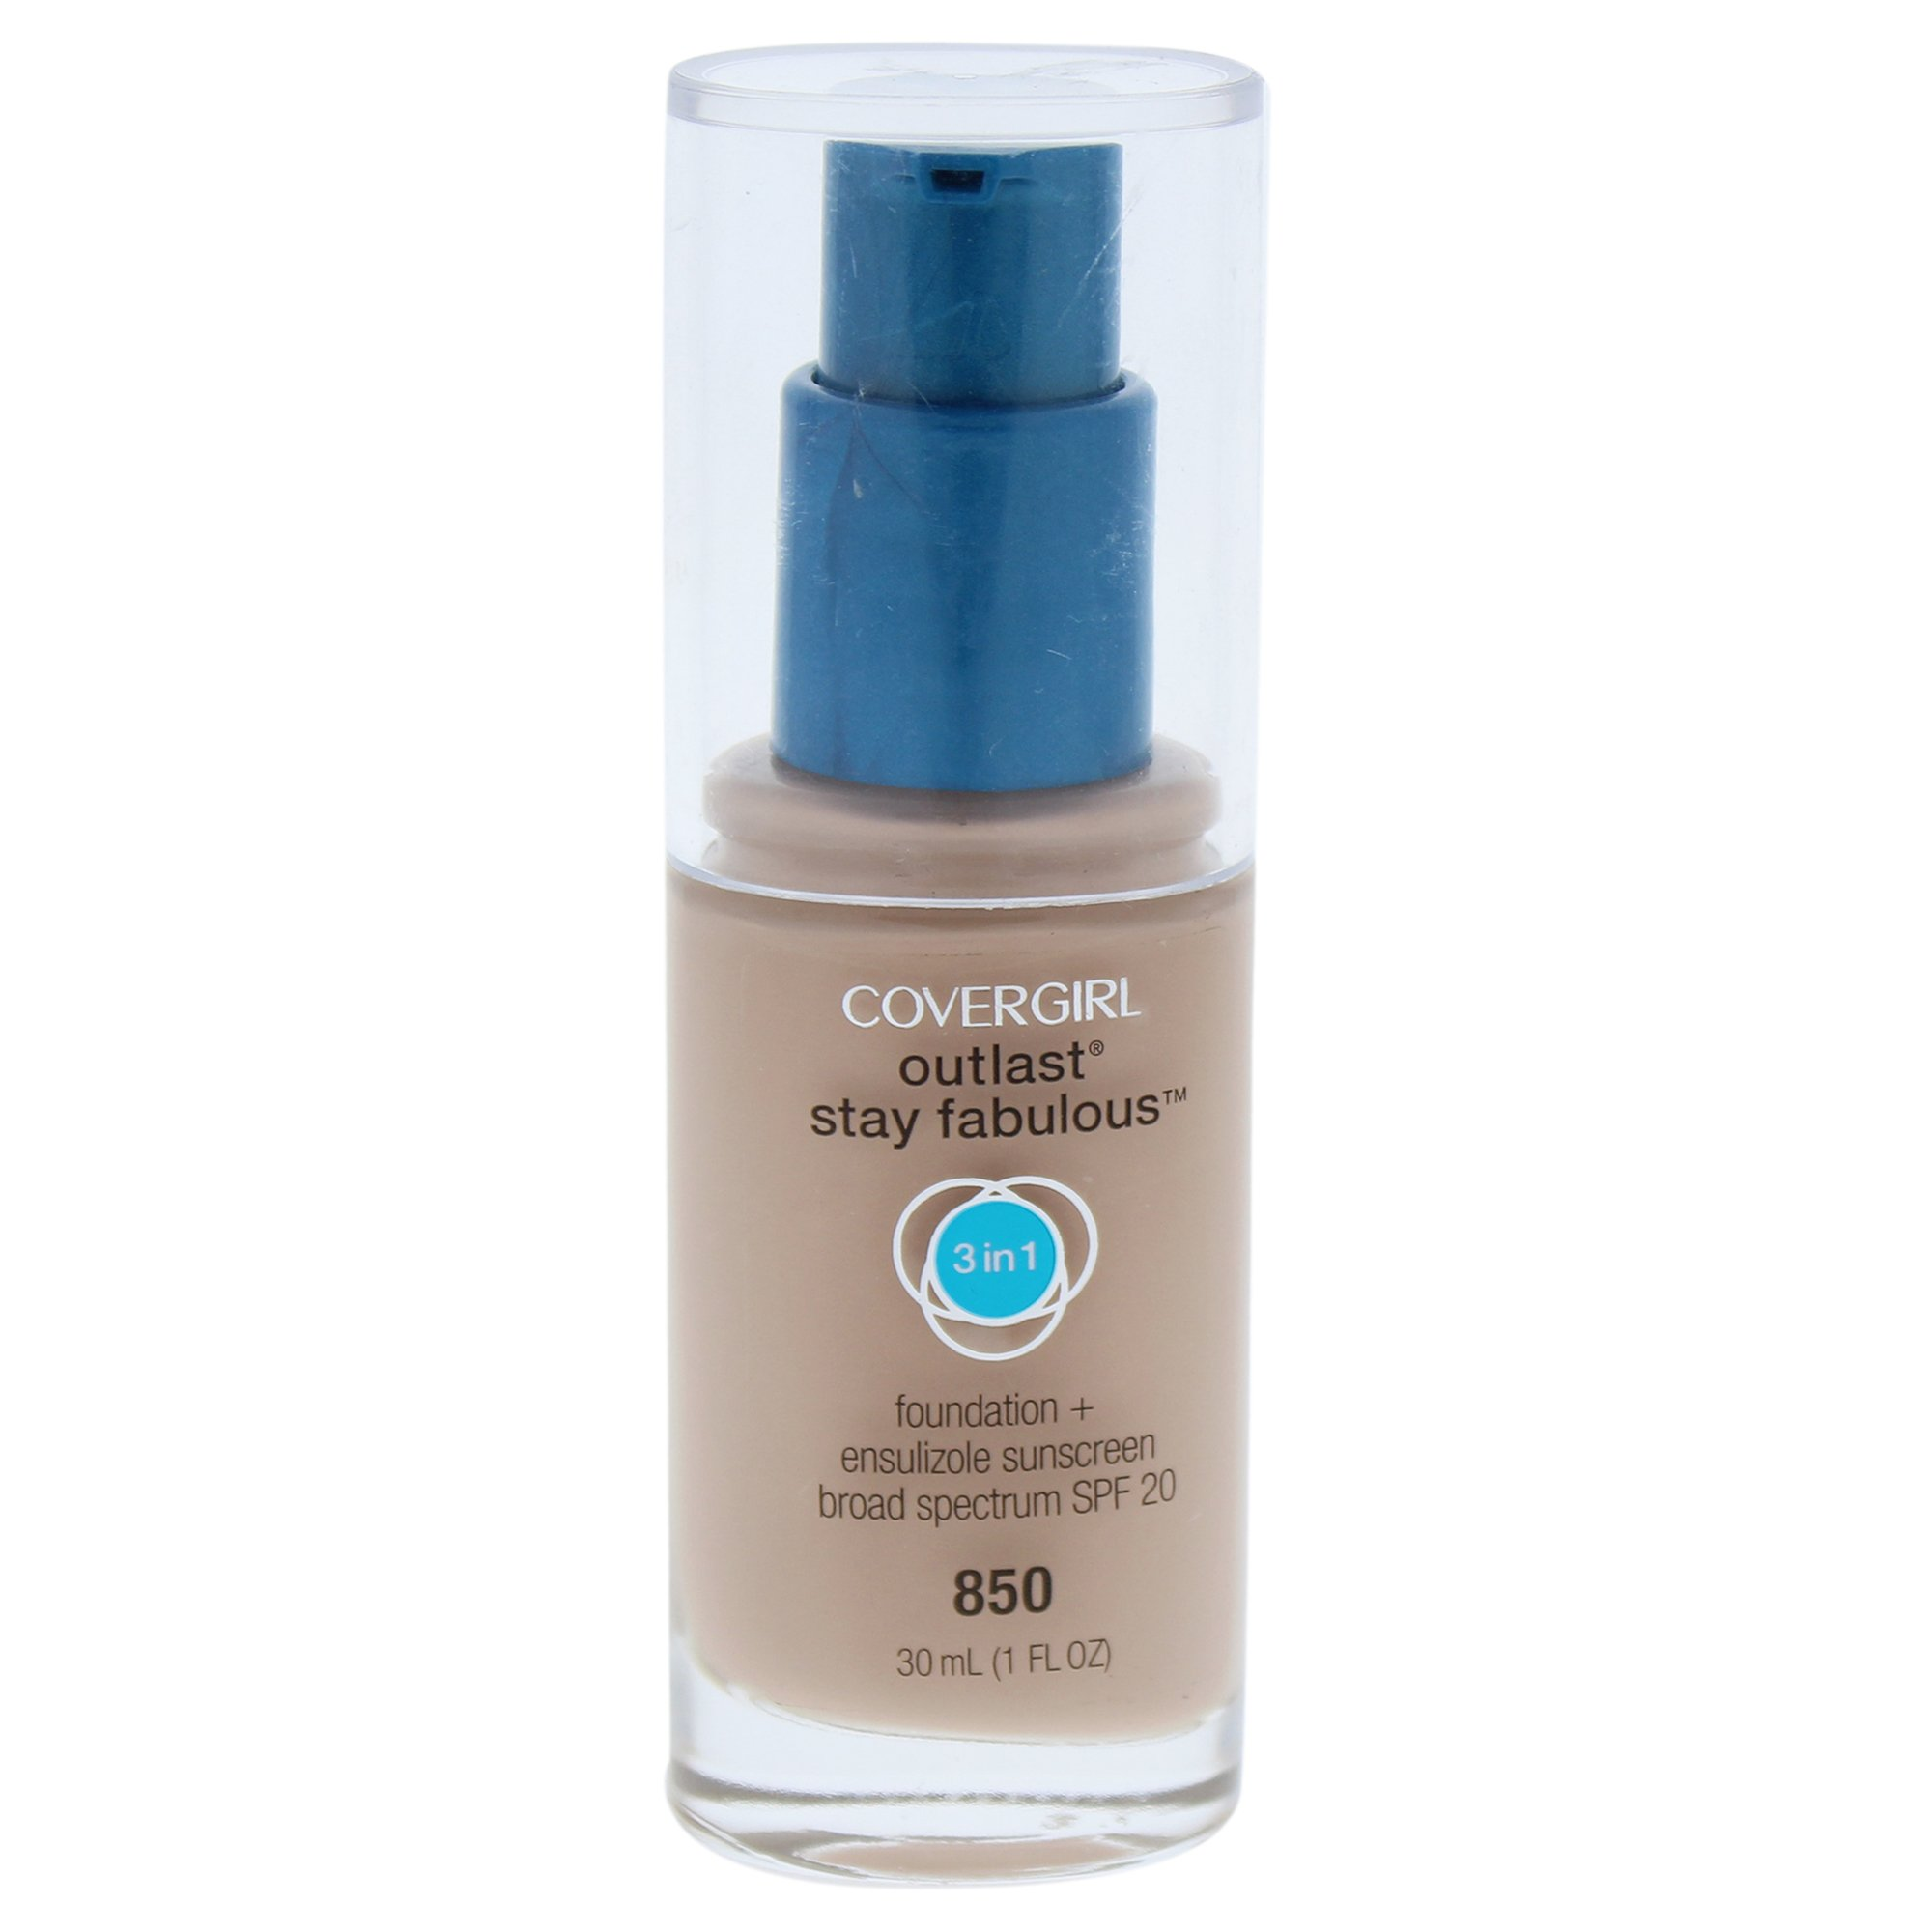 COVERGIRL Outlast All-Day Stay Fabulous 3-in-1 Foundation Creamy Beige, 1 oz